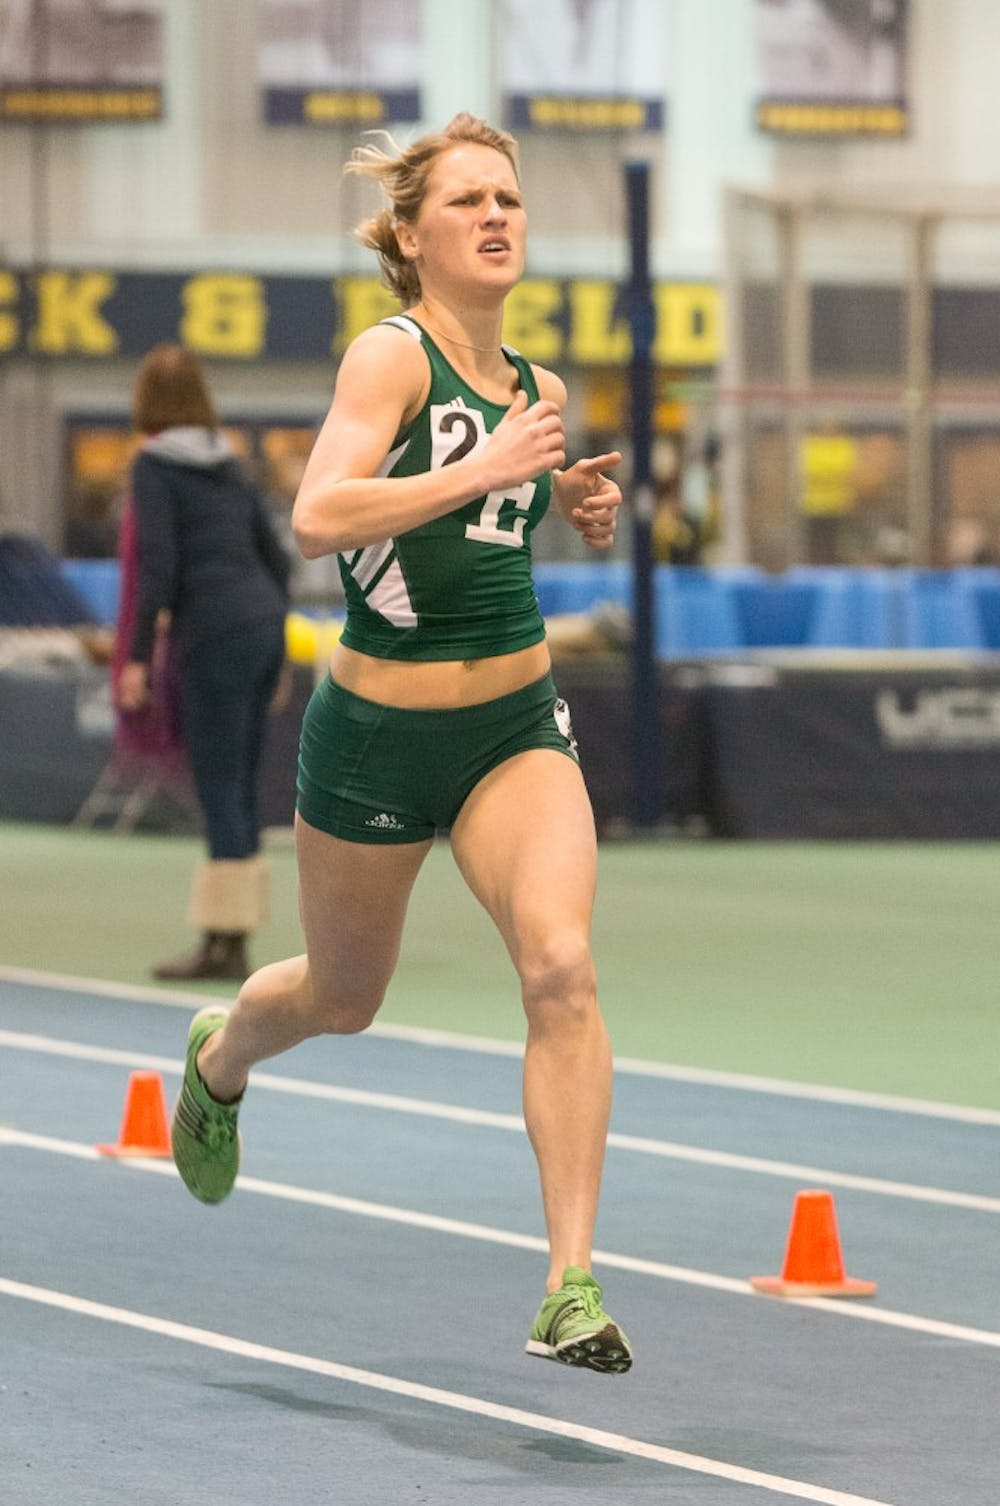 Women's track team finishes strong at Simmons